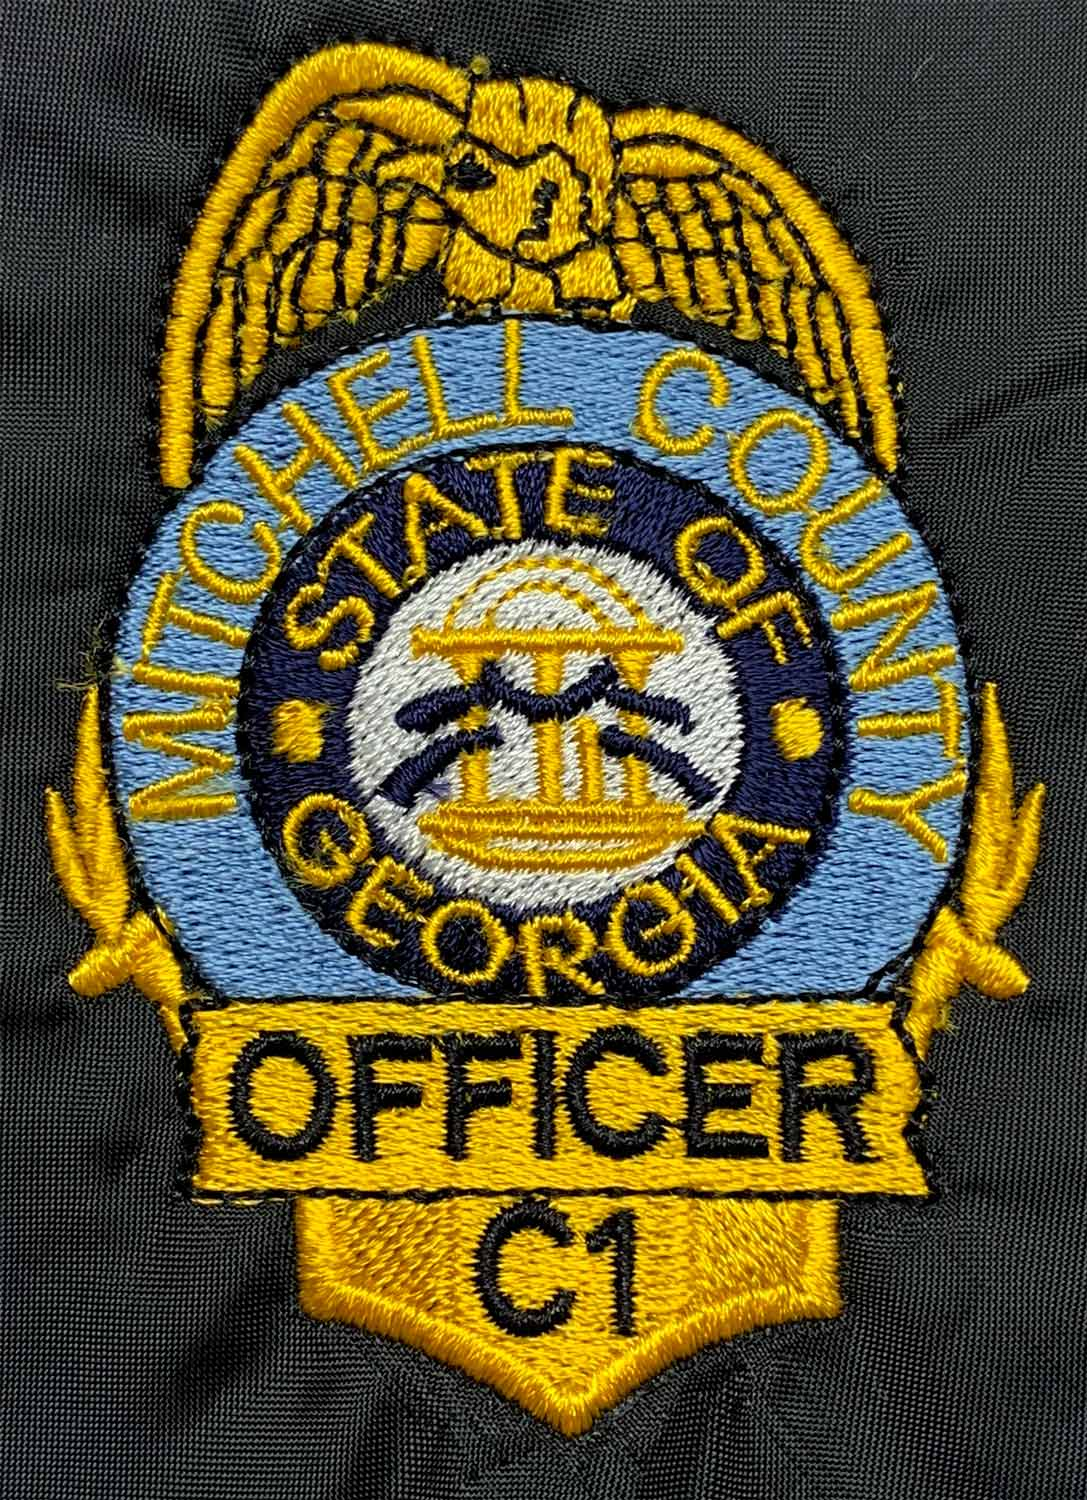 KYC_MITCHELL-COUNTY-OFFICE-STATE-OF-GA_web.jpg